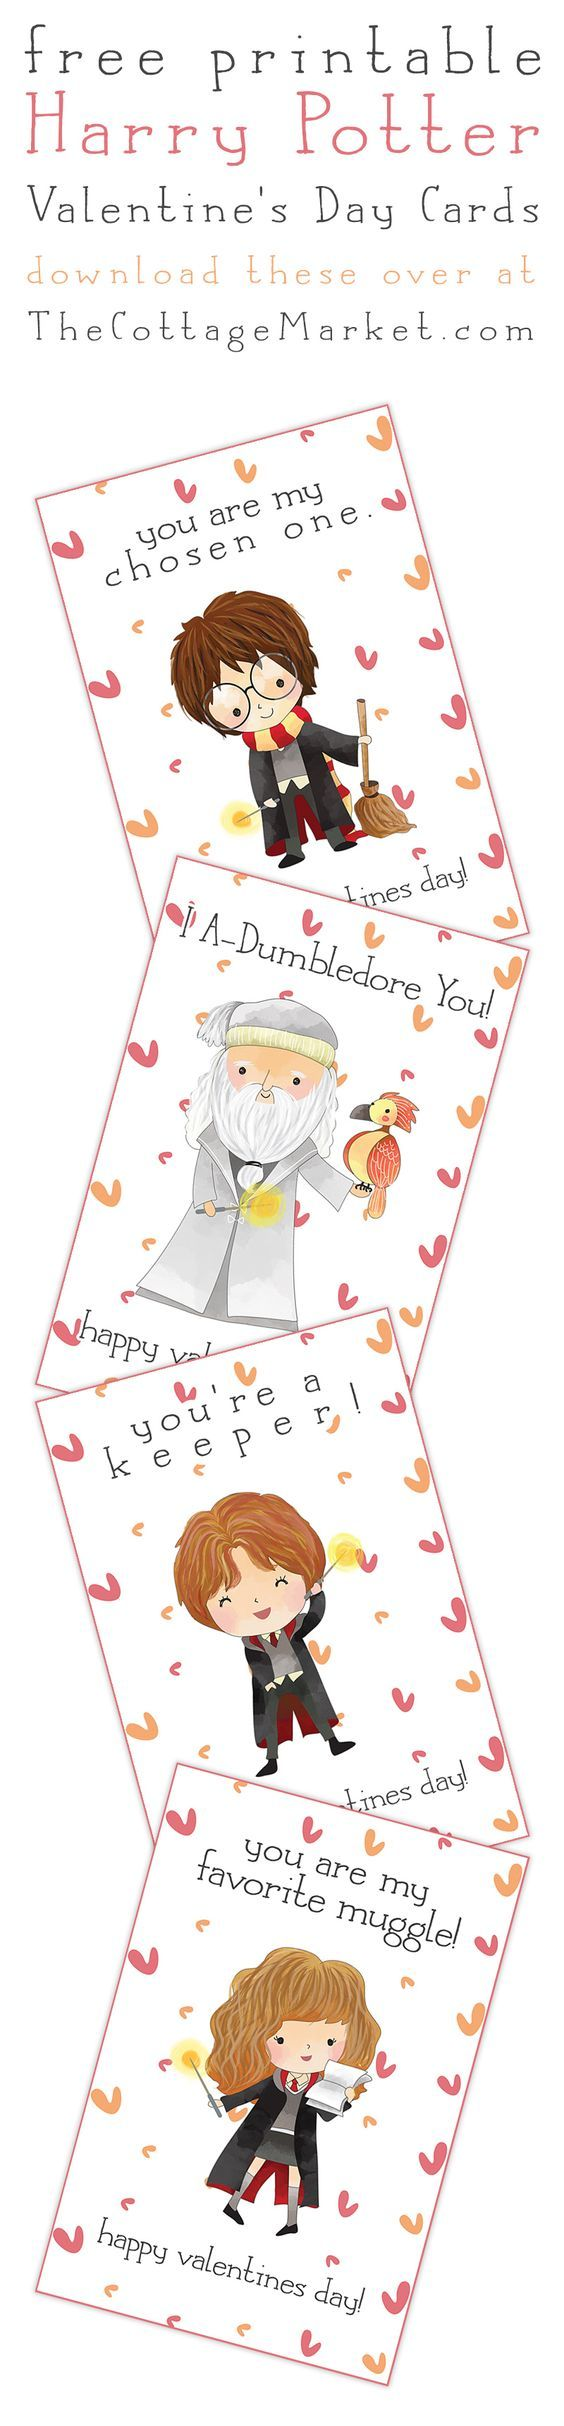 Free Printable Harry Potter Valentine's Day Cards